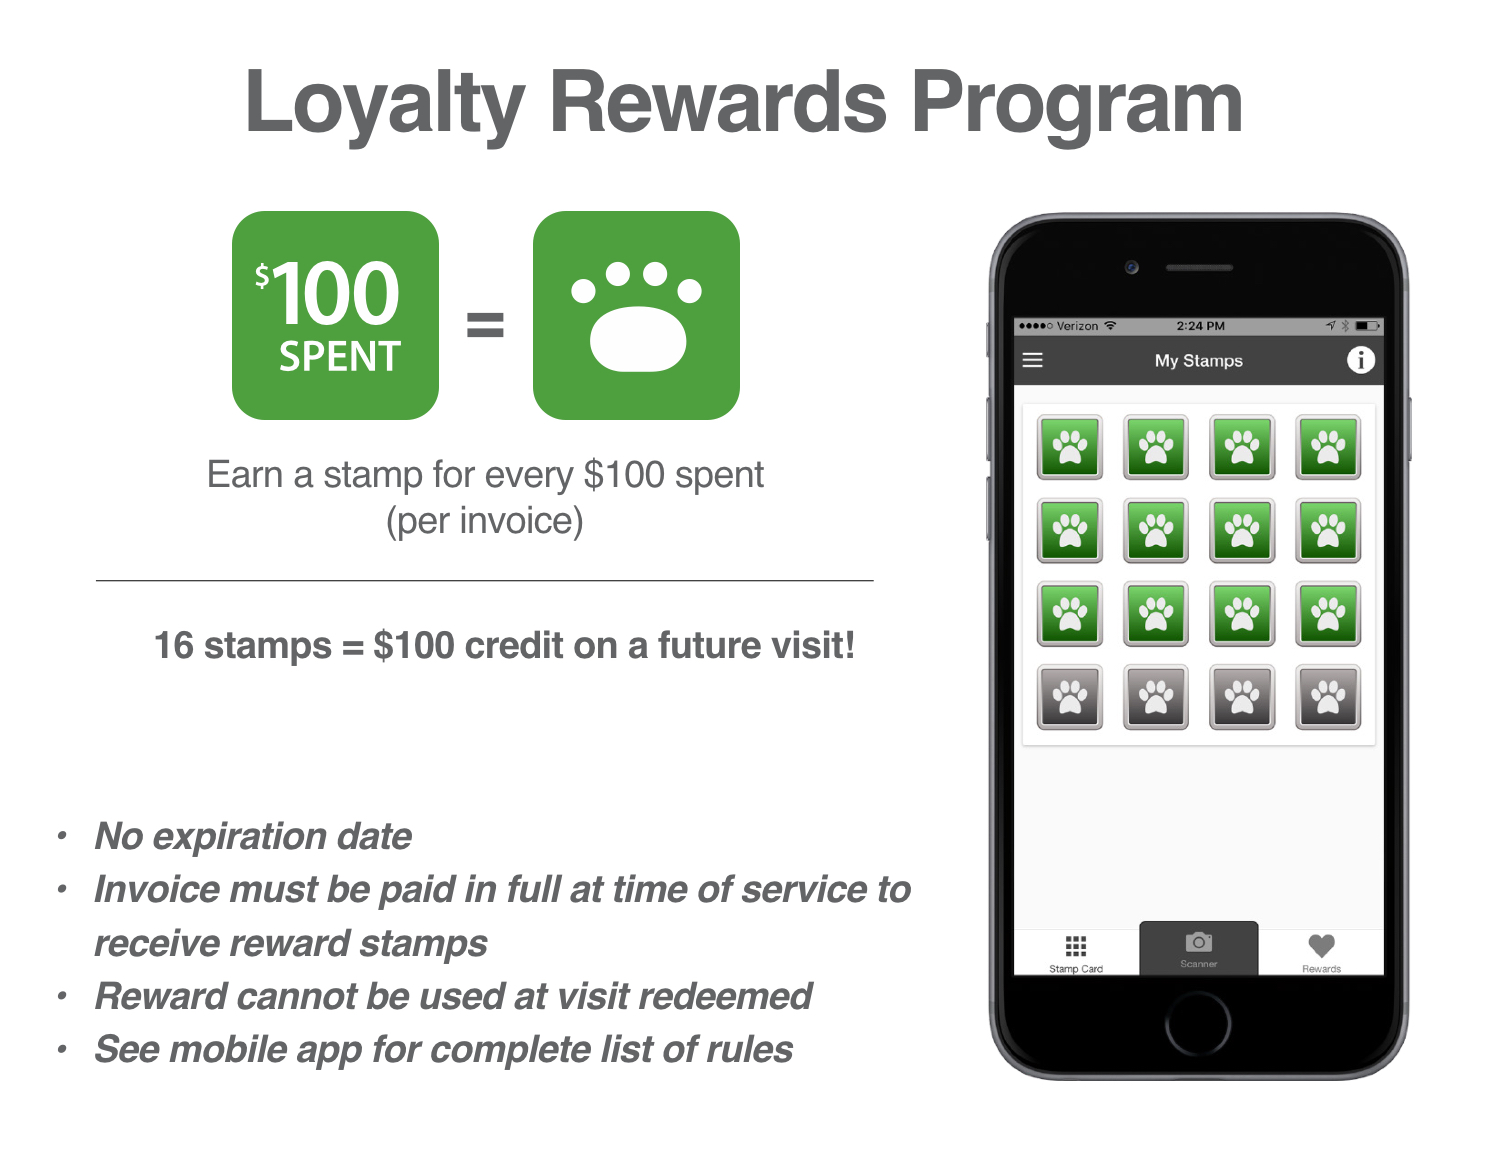 loyalty rewards program infographic